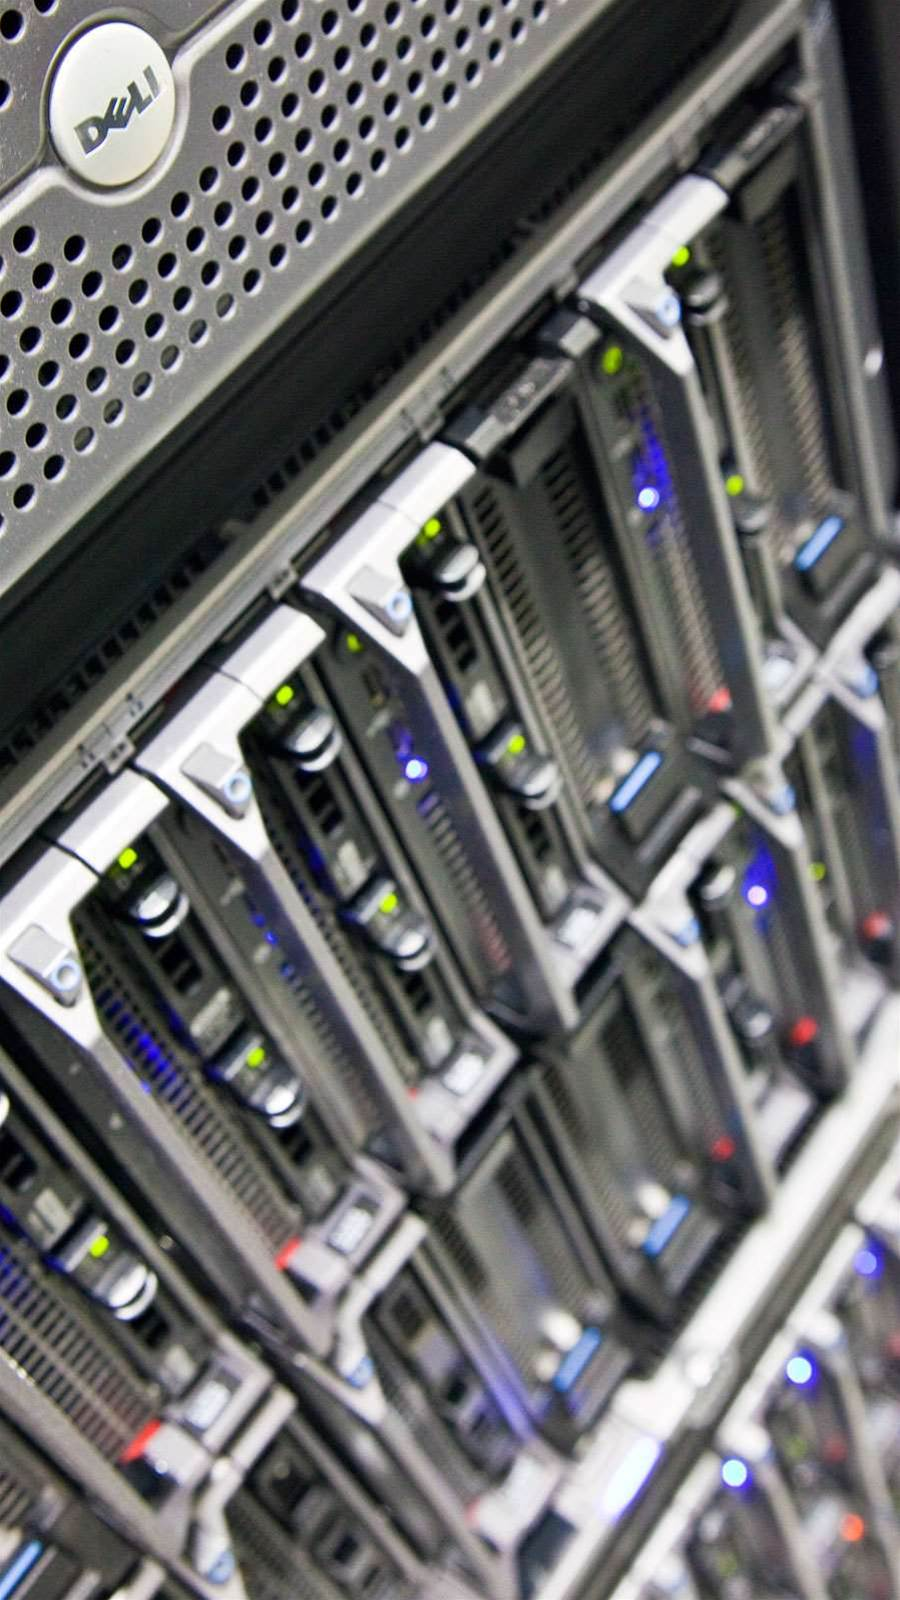 Blade servers in the Sydney Pegasus Data Centre.